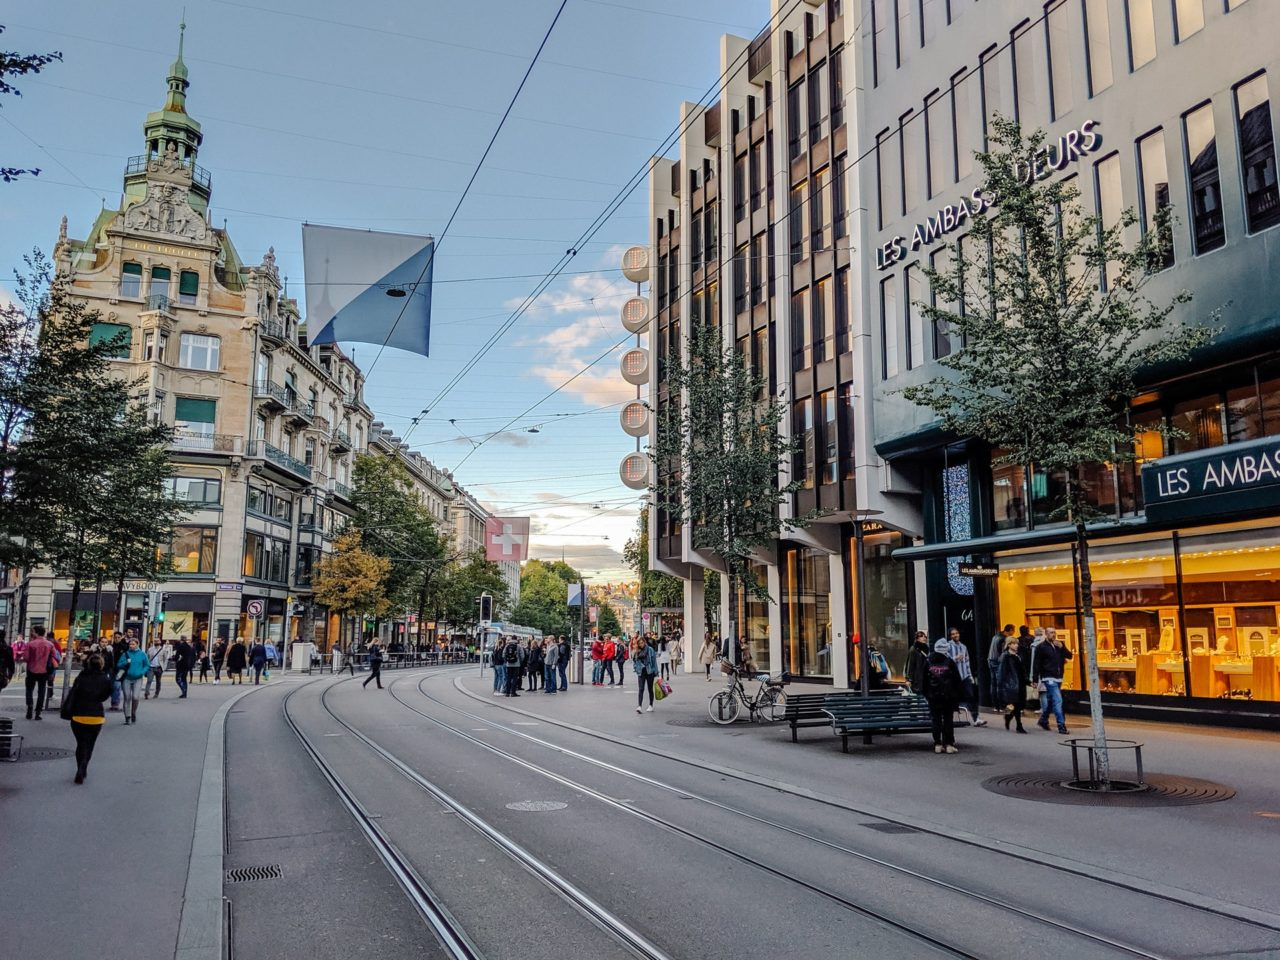 Bahnhofstrasse, one of the best places to visit in Switzerland